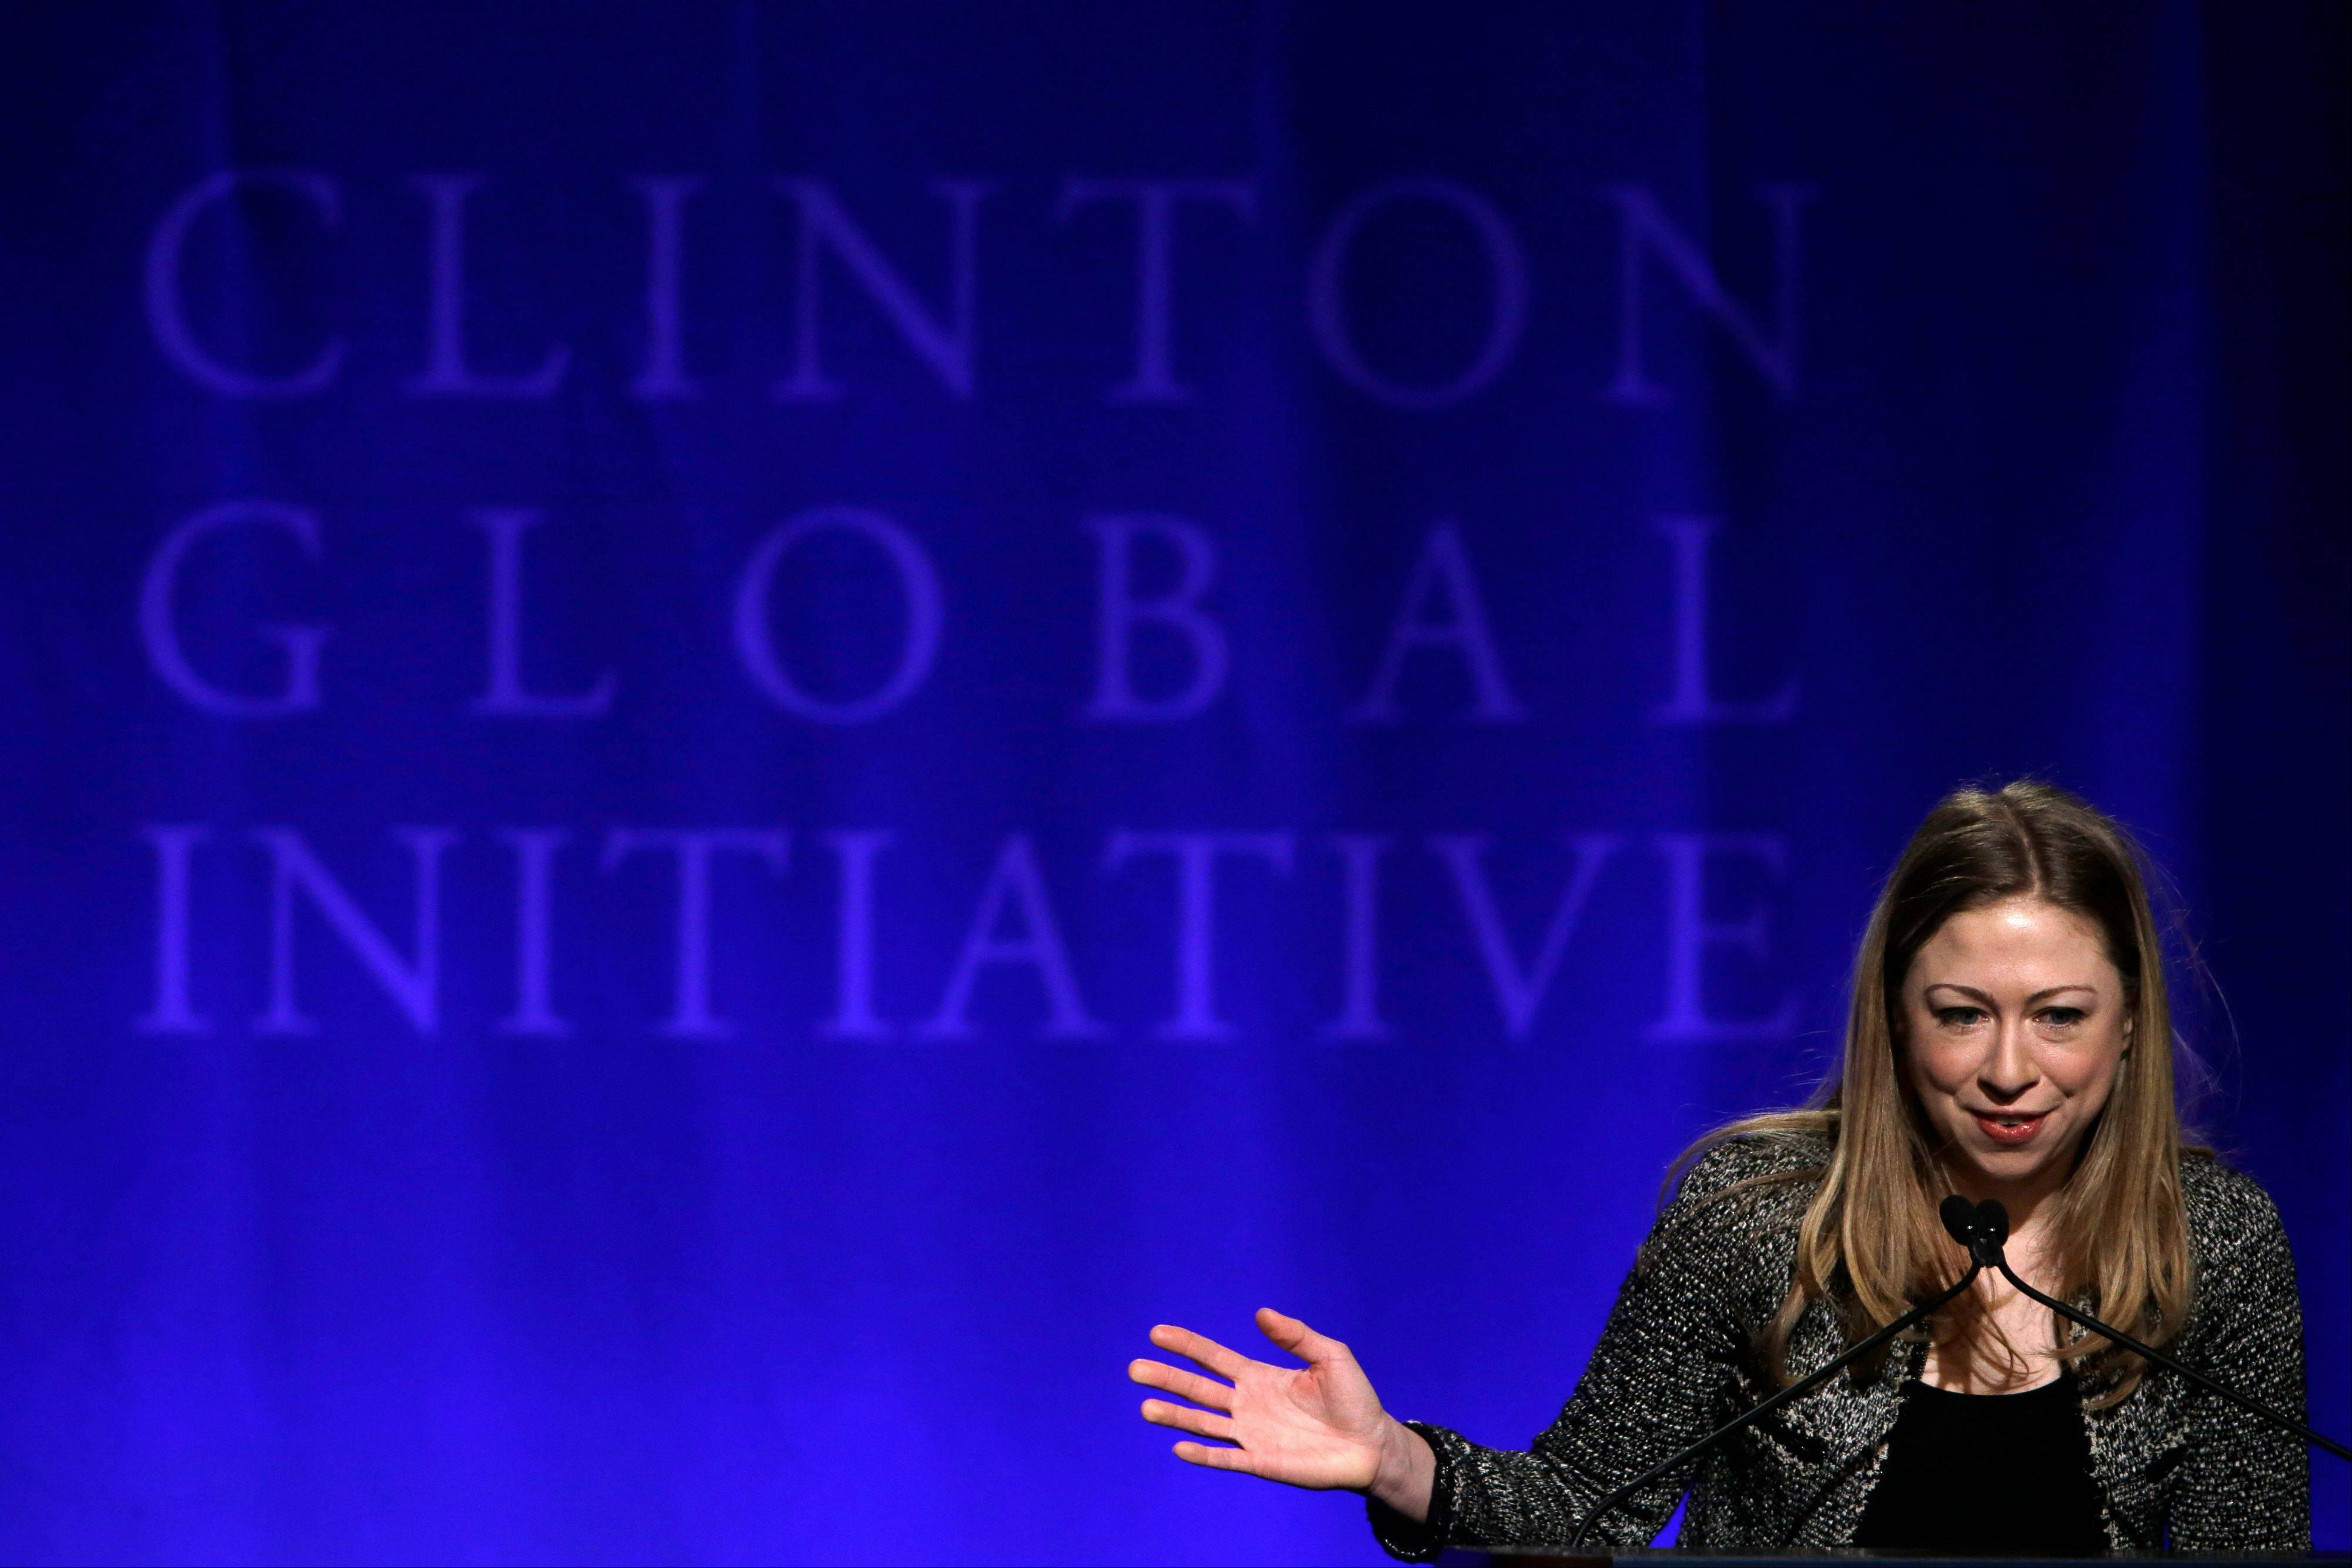 Chelsea Clinton speaks during a Clinton Global Initiative plenary session on empowering women at Washington University Saturday, April 6, in St. Louis. More than 1,000 university students from 75 countries and all 50 states are gathered for a weekend of sessions seeking practical and innovative solutions to the world�s problems.